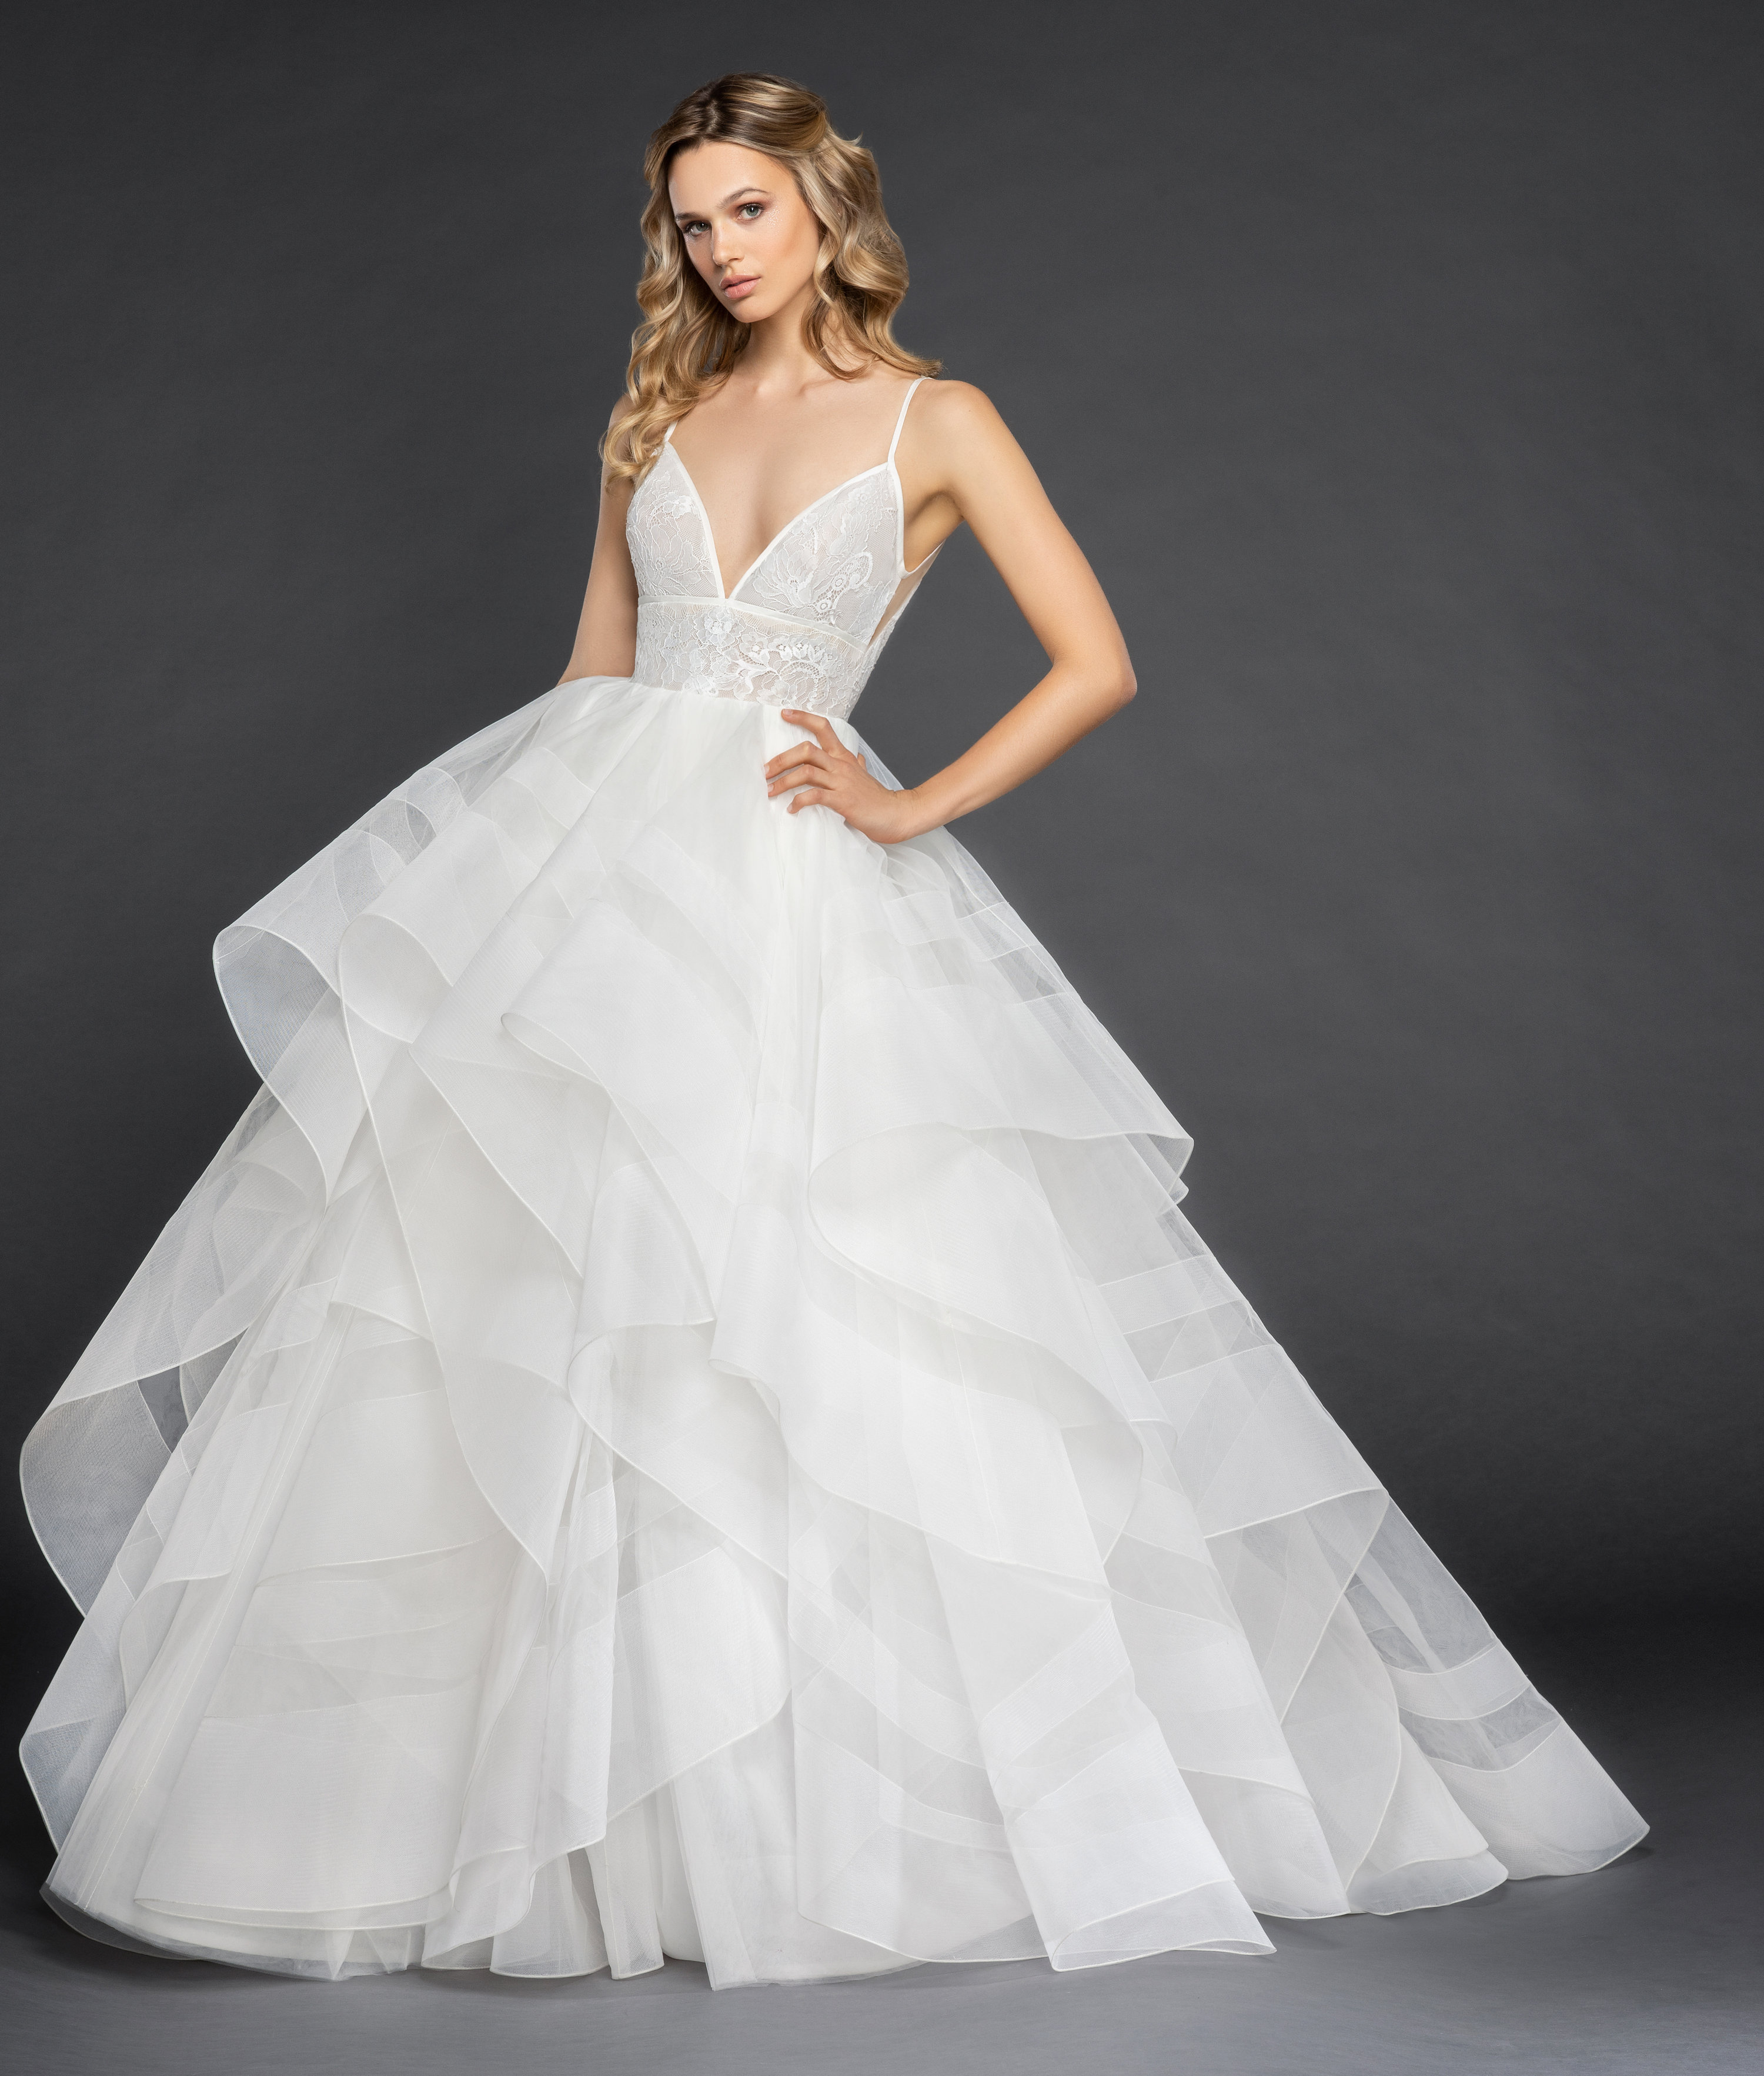 Bridal Gowns and Wedding Dresses by JLM Couture - Style 6859 Aldridge